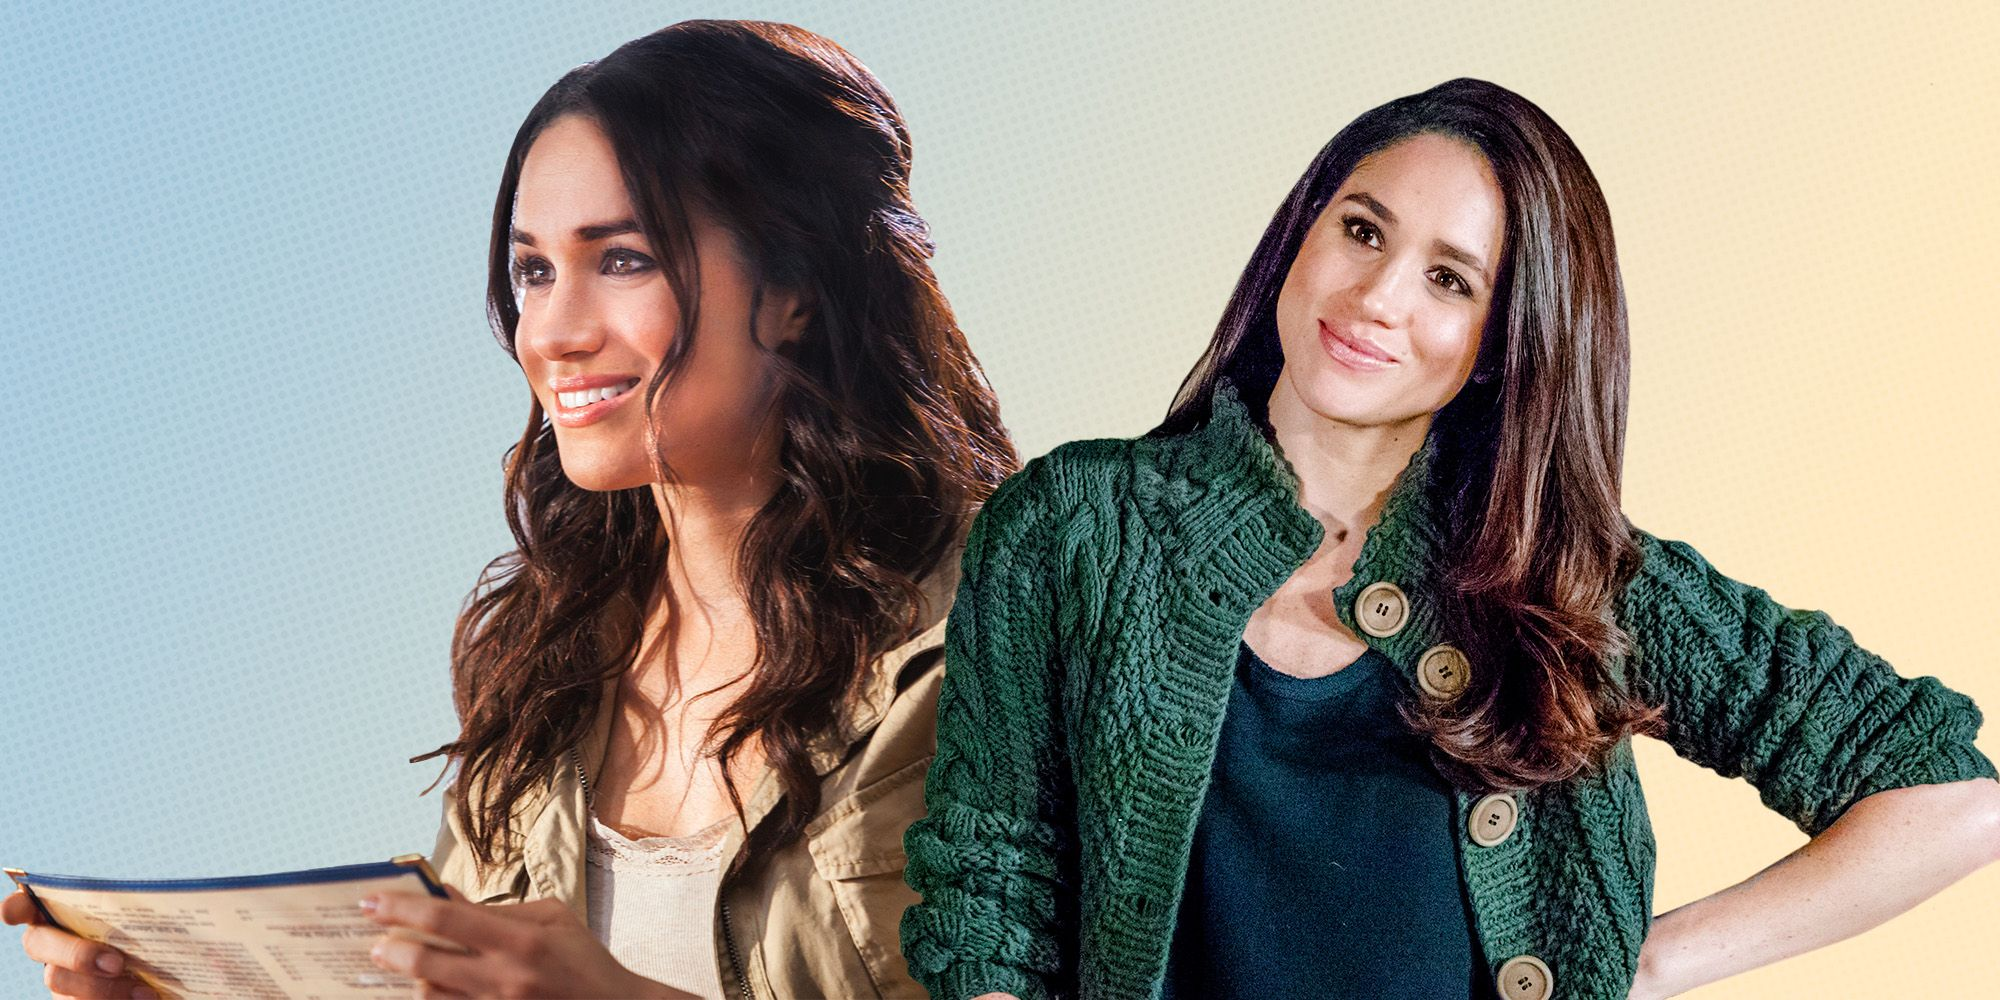 A Harvest Wedding Cast.Meghan Markle S Hallmark Movies Guide To Meghan Markle S Movies